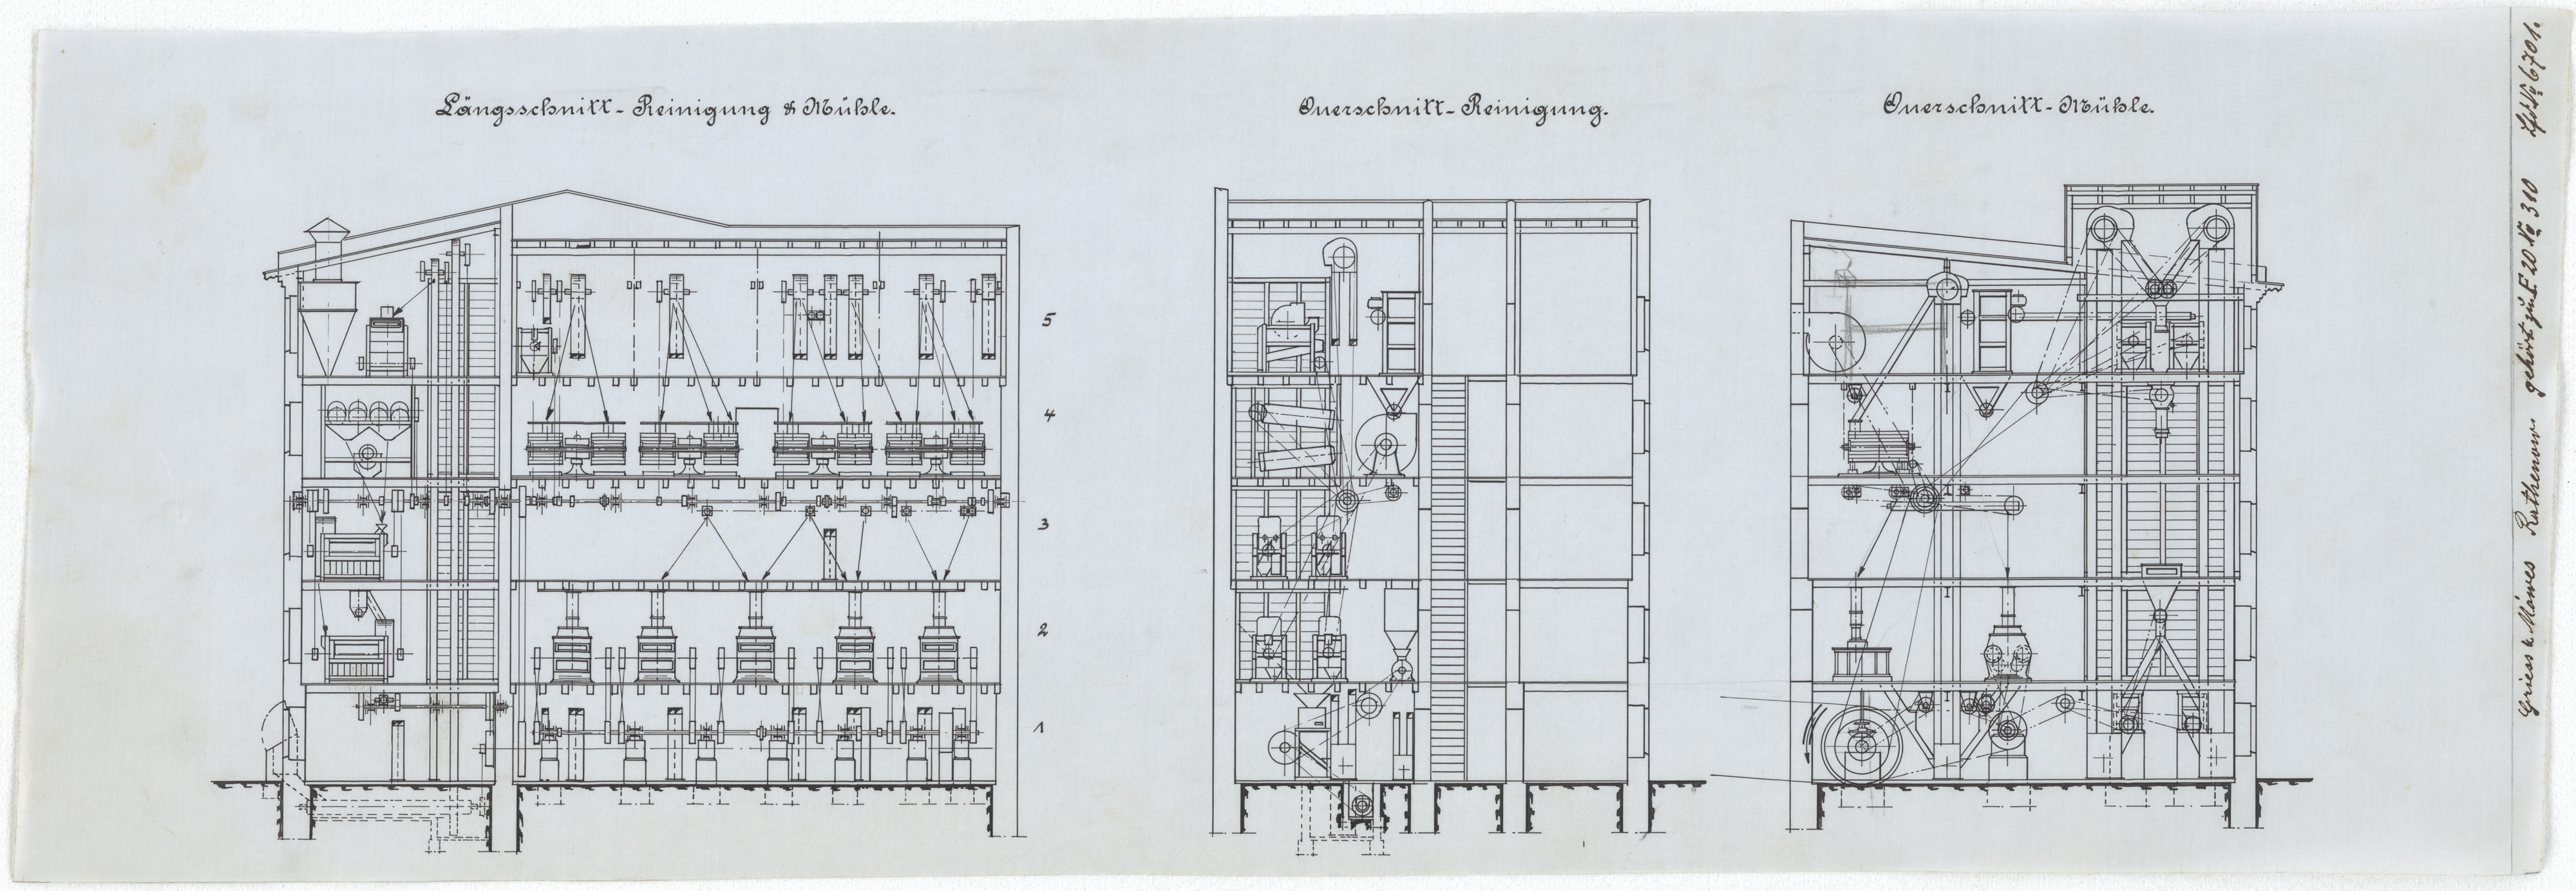 Technische Zeichnung : [Projekt zum Neubau einer Roggenmühle für die Herren P. Griess & Moewes, Rathenow] (Stiftung Deutsches Technikmuseum Berlin CC BY-SA)